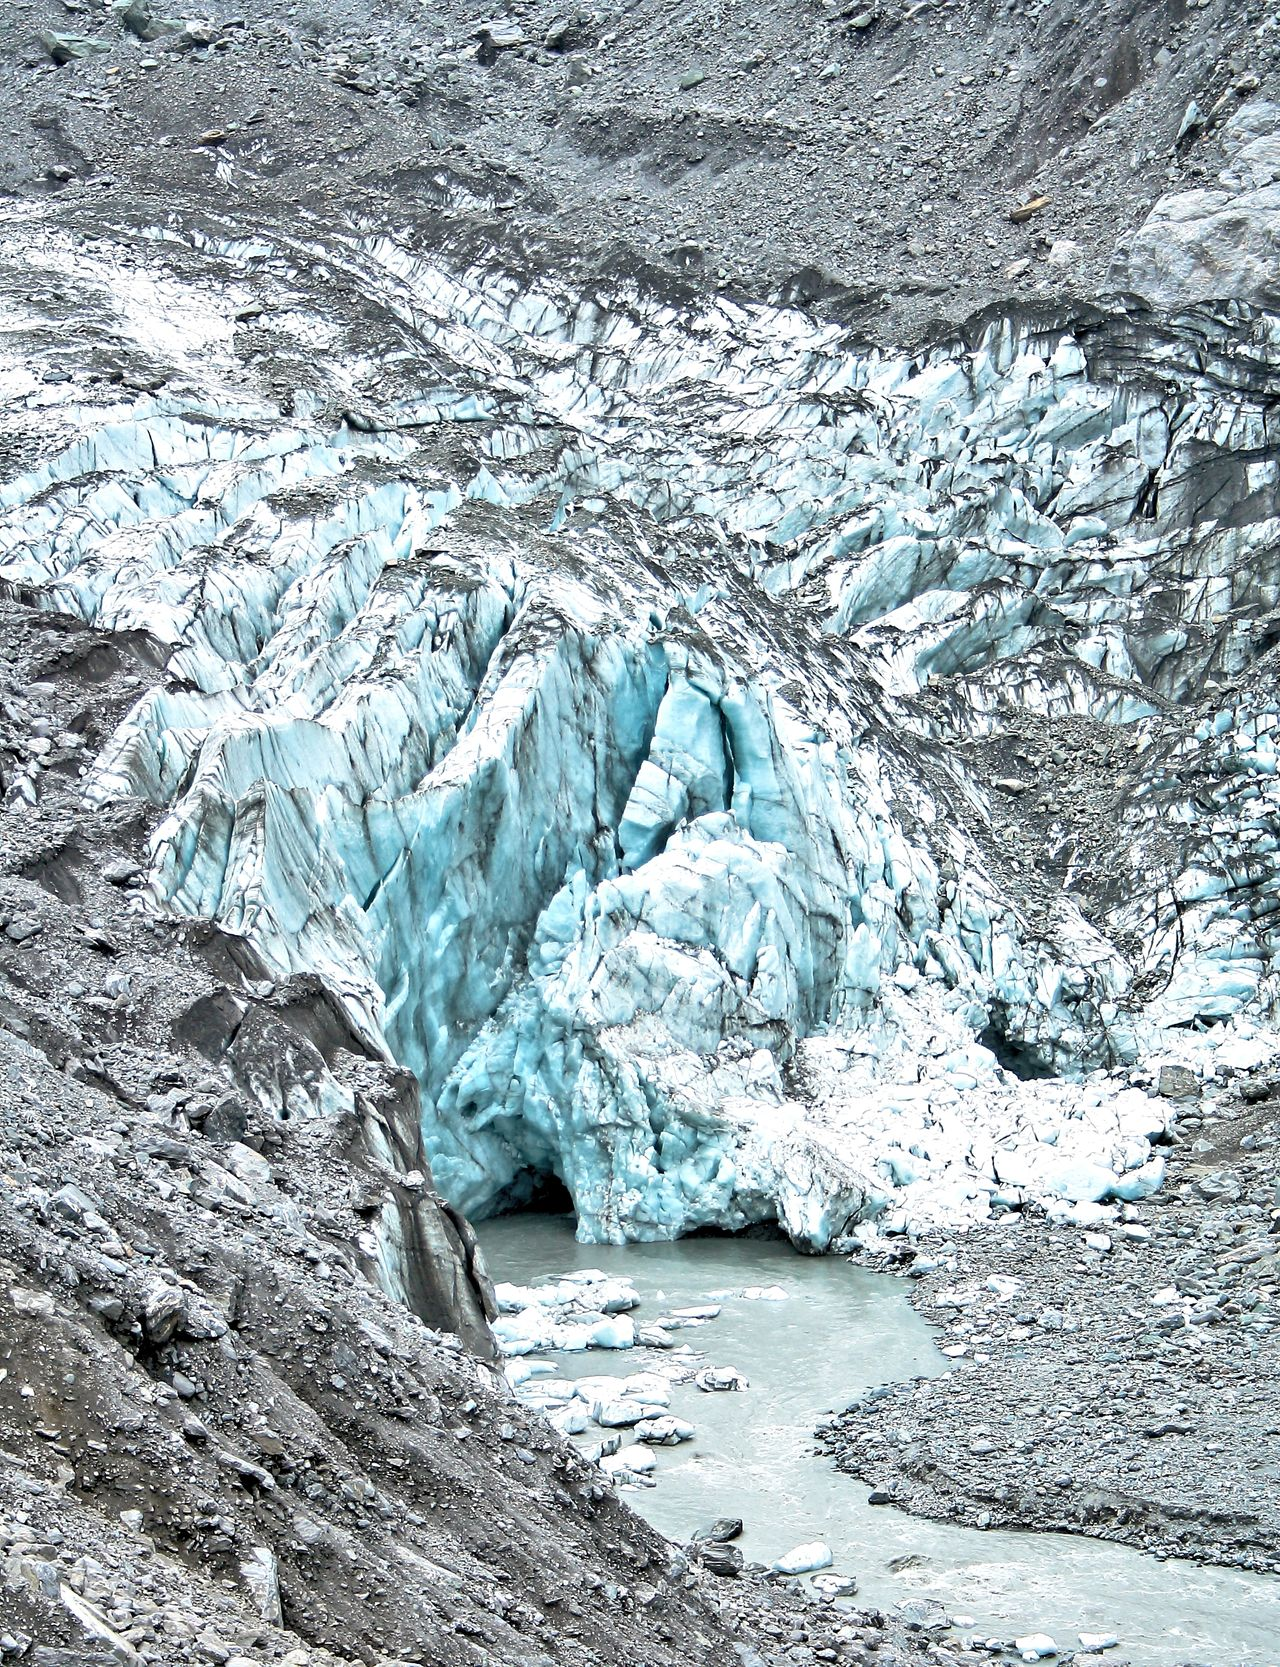 Glacial Beauty Day Eroded Franz Josef Franz Josef Franz Josef Glacier Franz Josef Or Fox Glacier Geology Geometry Glacier Glaciers Mountain Nature New Zealand New Zealand Glaciers New Zealand Scenery Physical Geography Rock Rock - Object Rock Formation Rocky Rocky Mountains Rough Scenics Stone Texture